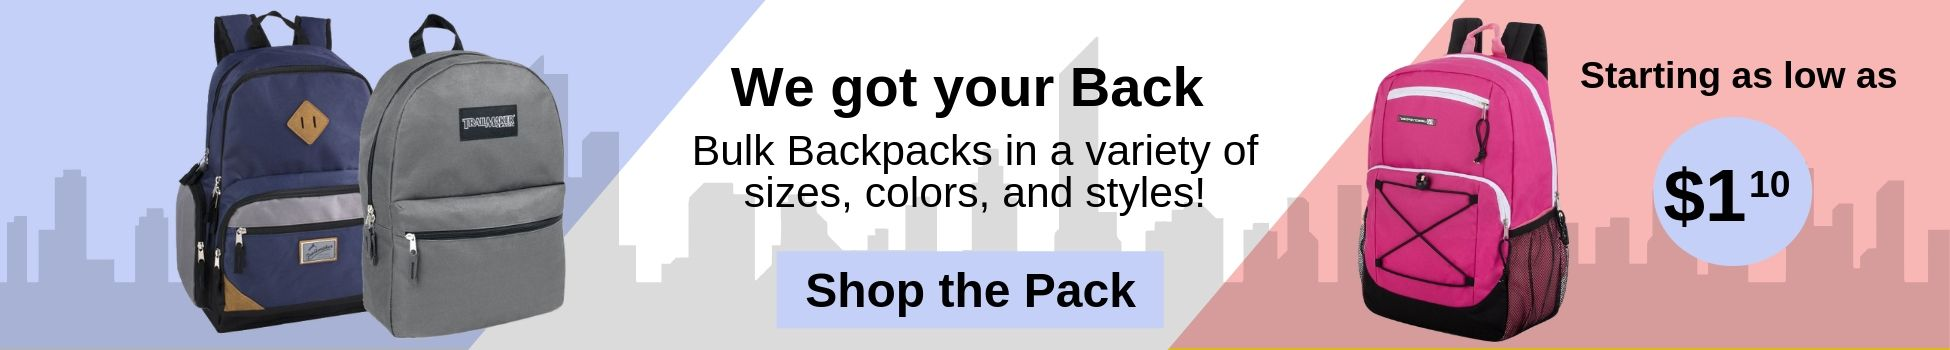 Wholesale Backpacks, bulk backpacks